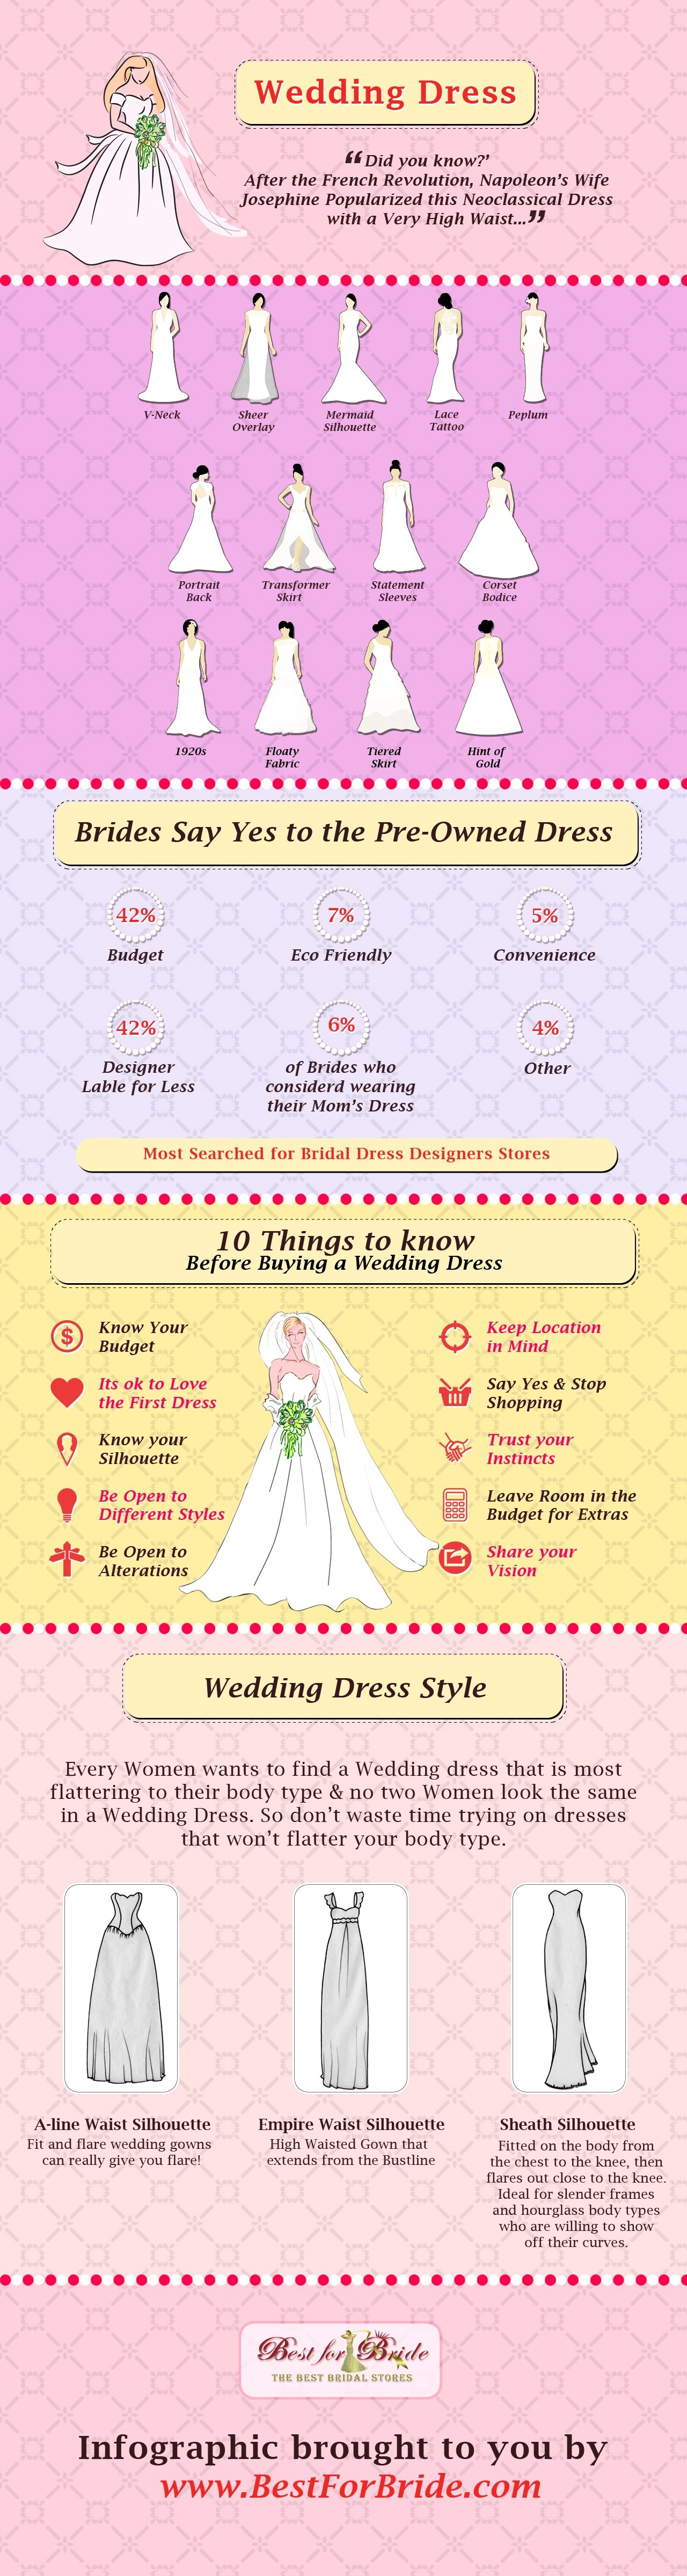 We are here to simplify the difficult process of shopping wedding gowns and bridesmaid dresses!